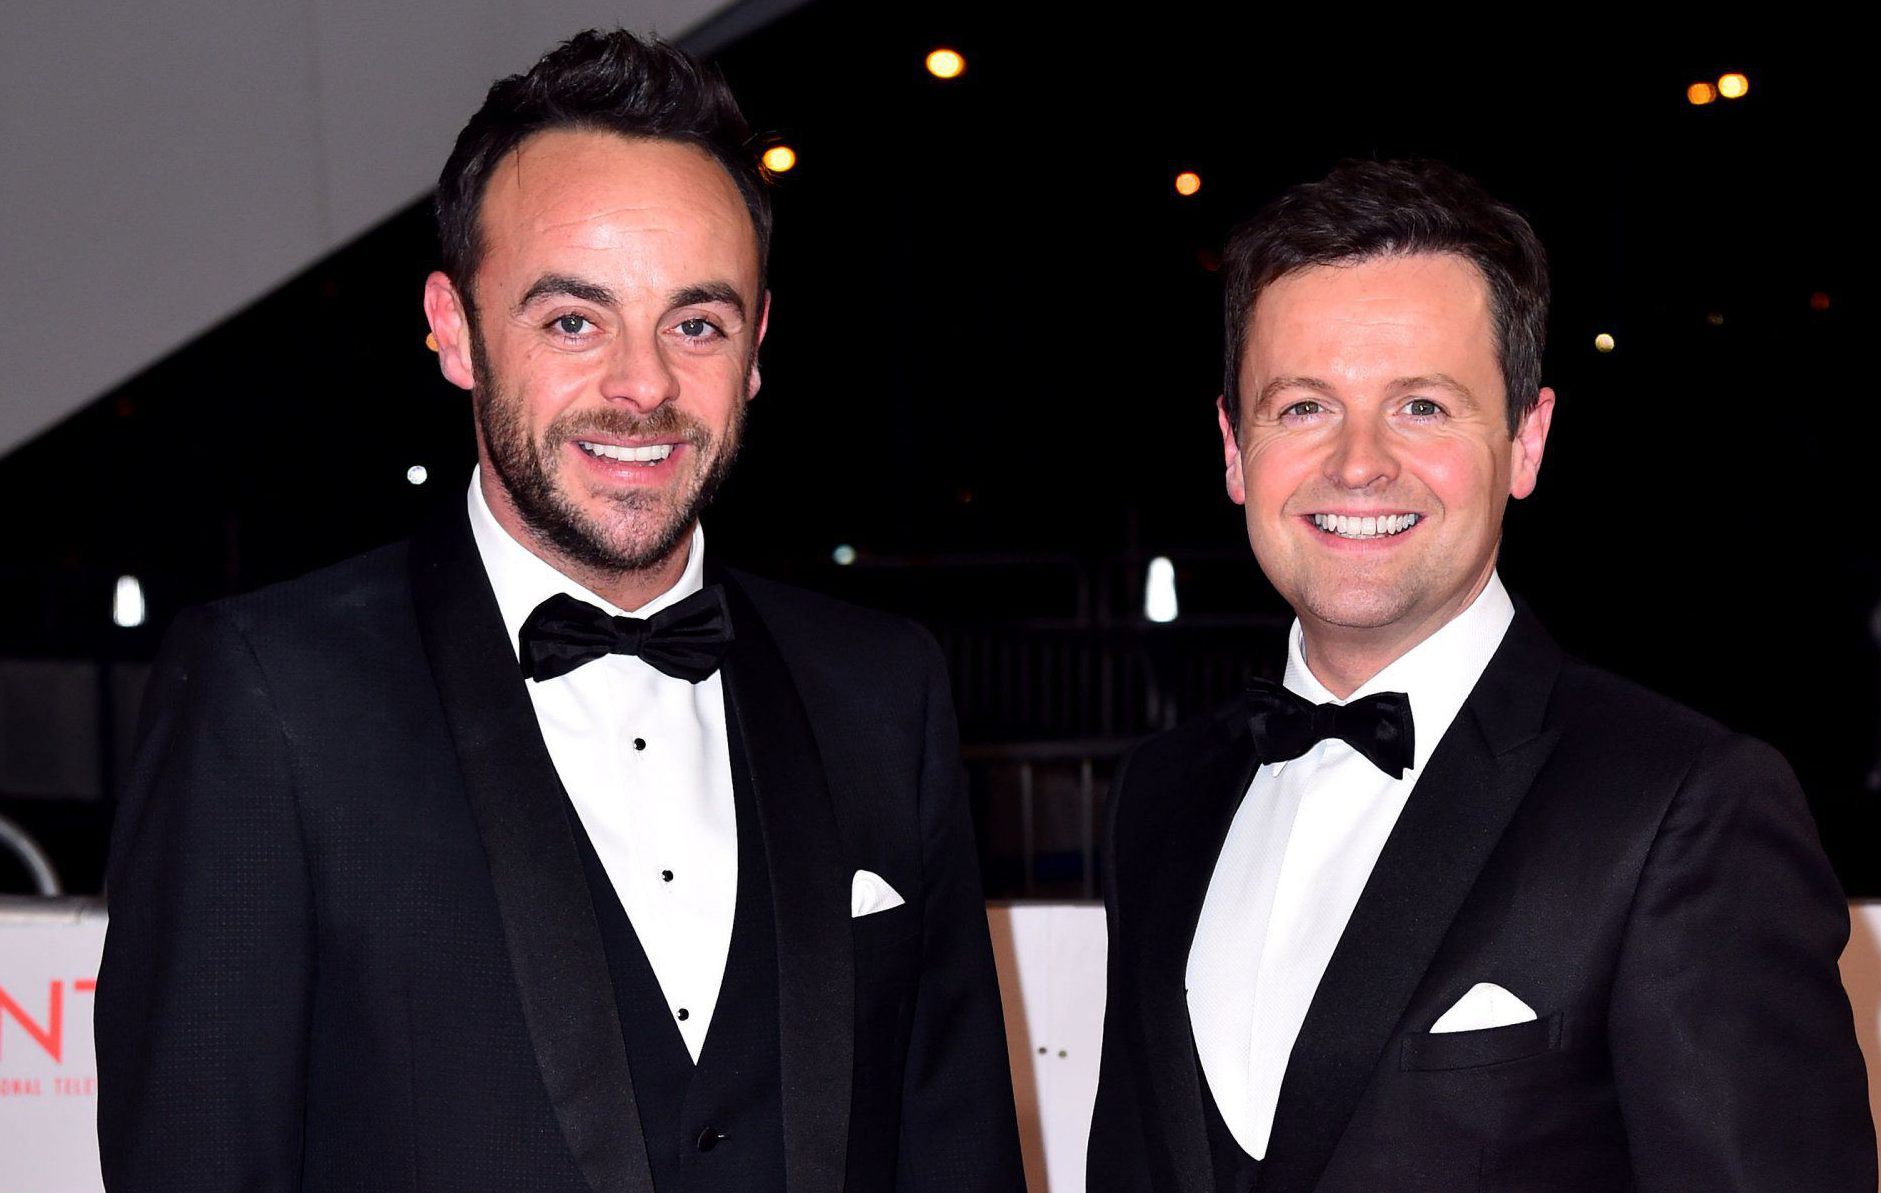 Declan Donnelly age, height, net worth and wife after Ant McPartlin's 'drink driving' arrest